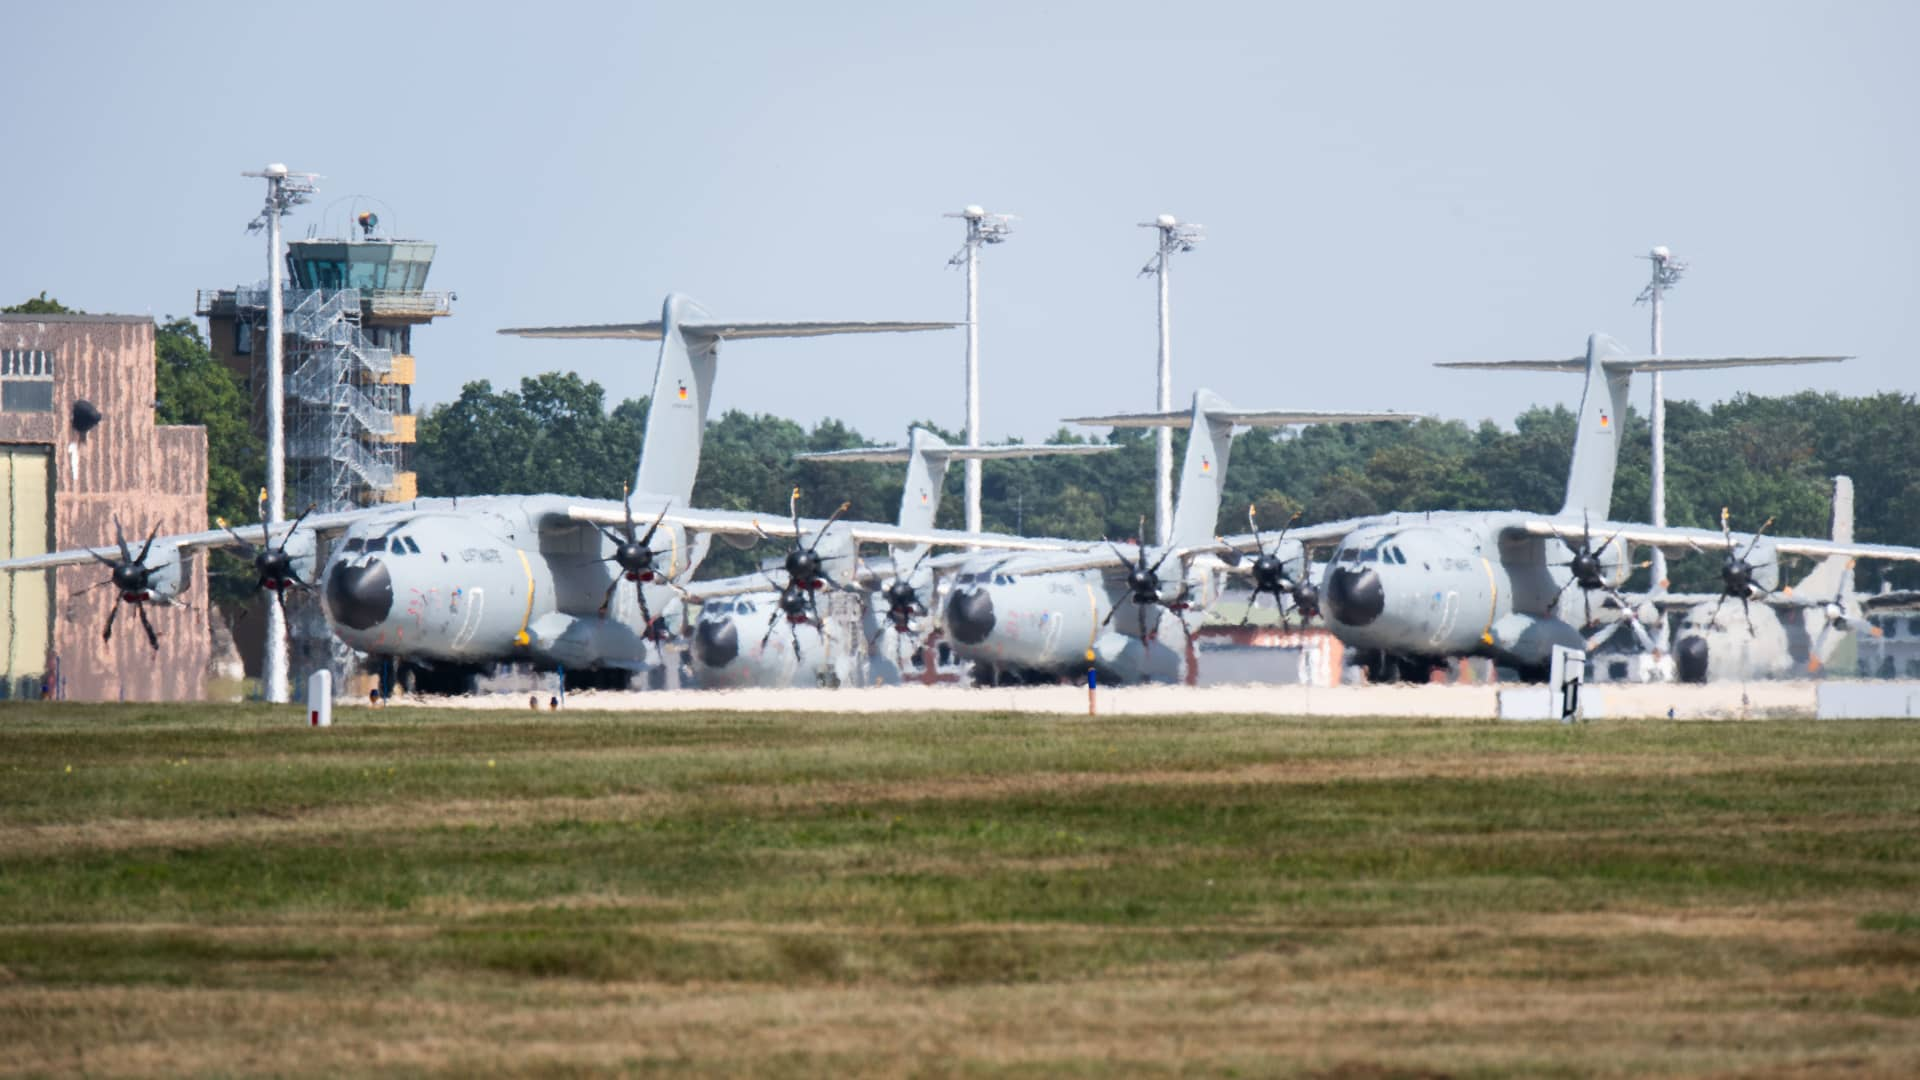 Airbus A400M transport aircraft of the German Air Force stand at the Wunstorf air base in the Hanover region. In view of the rapid advance of the Taliban in Afghanistan, the Bundeswehr plans to begin evacuating German citizens and local Afghan forces from Kabul on Monday Aug. 16th.